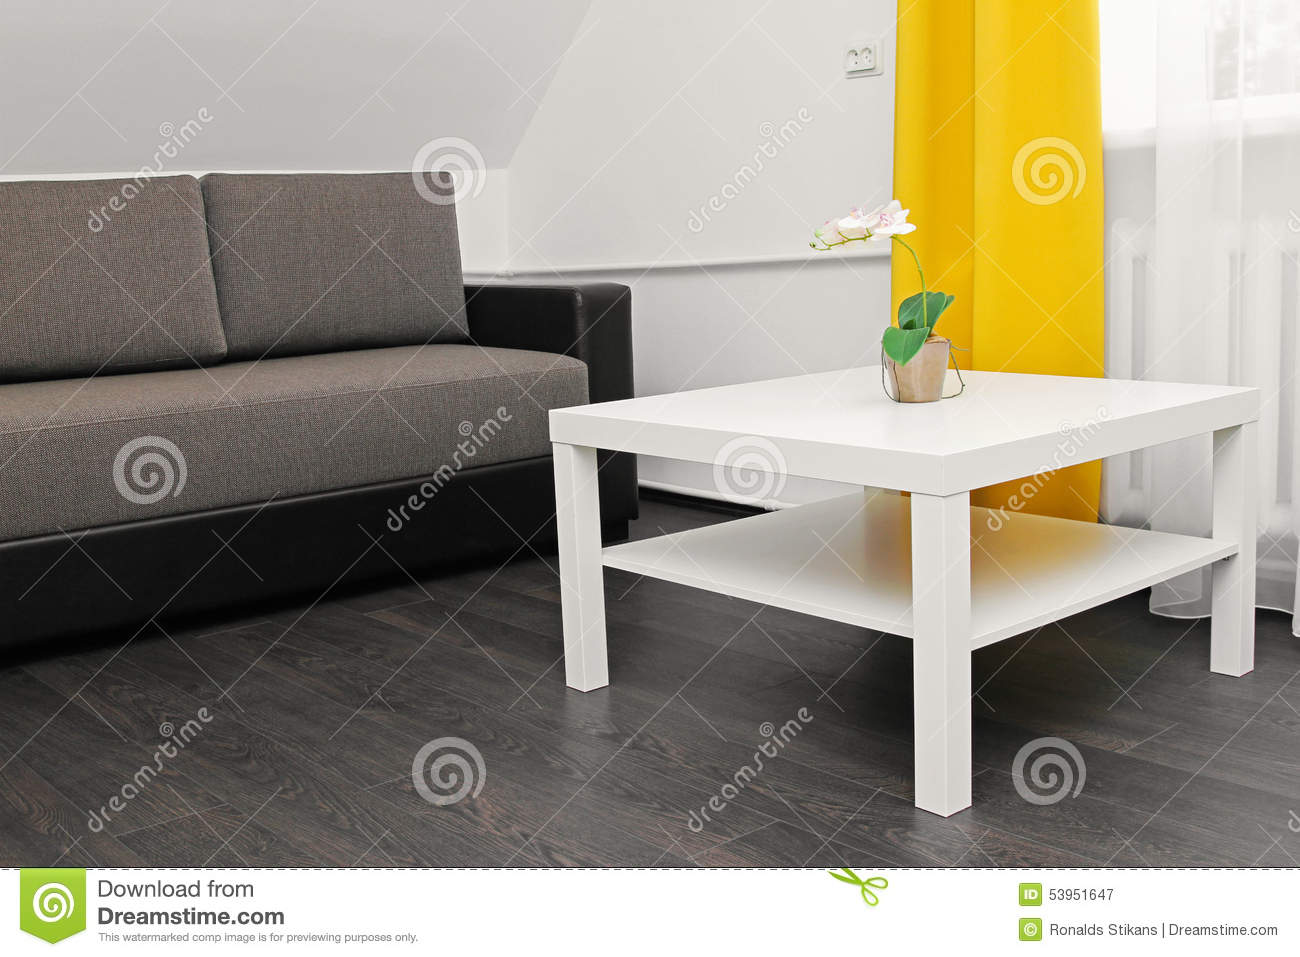 Apartment interior with sofa coffee table and yellow cur for Sofa table yellow